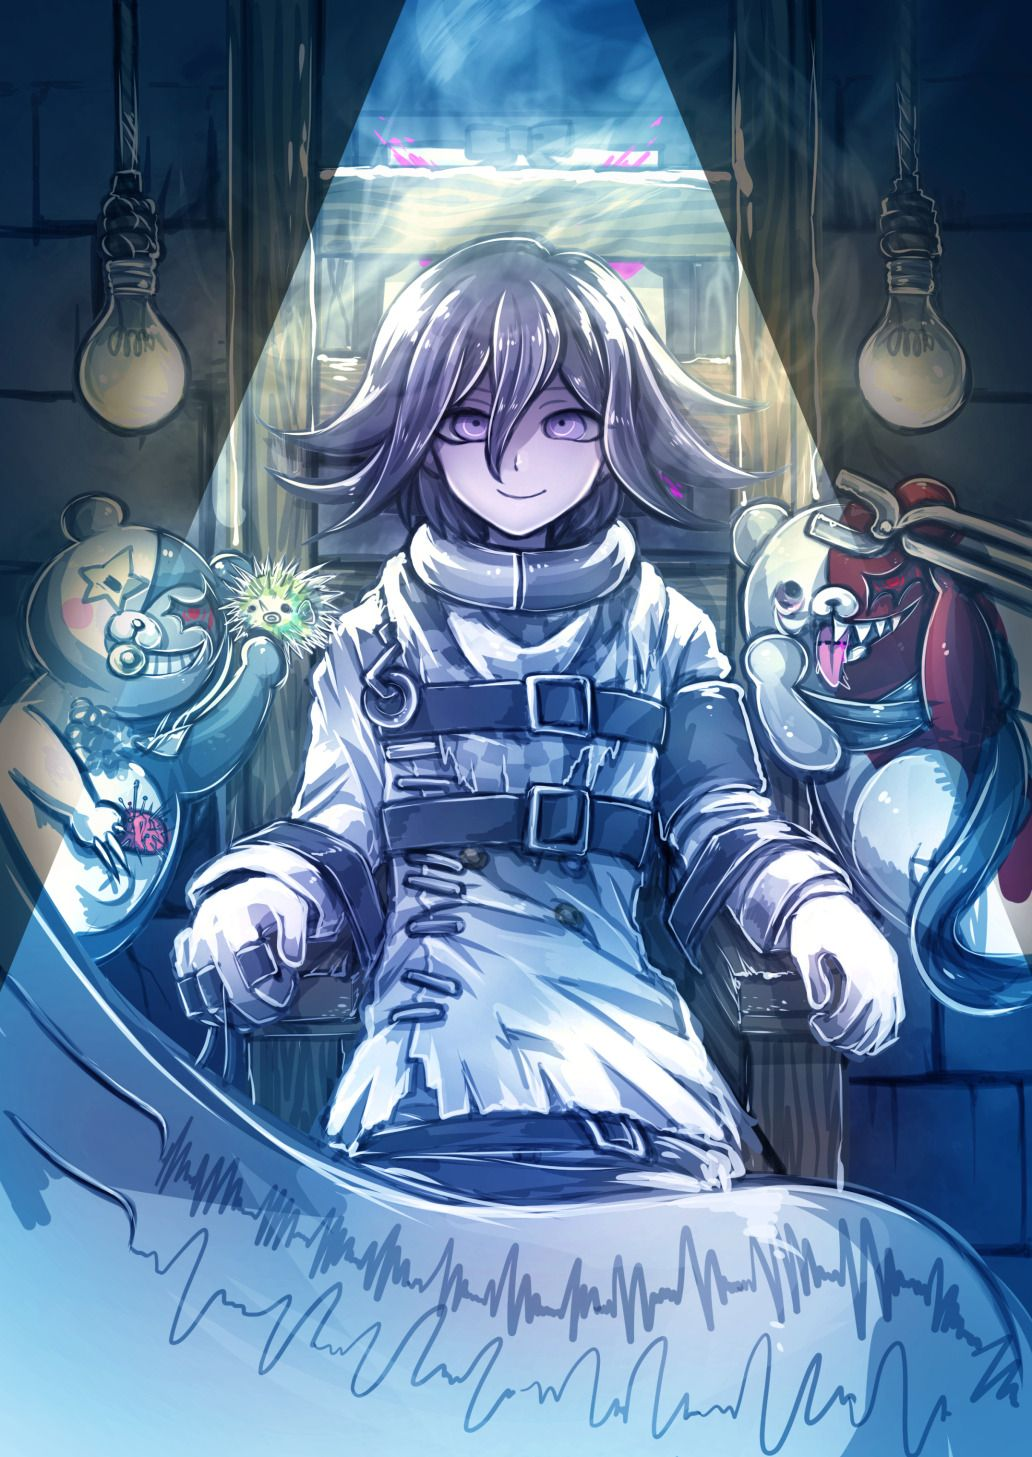 Qkikoaoalqkkqql If Anything Were To Happen To Ouma I Would Kill